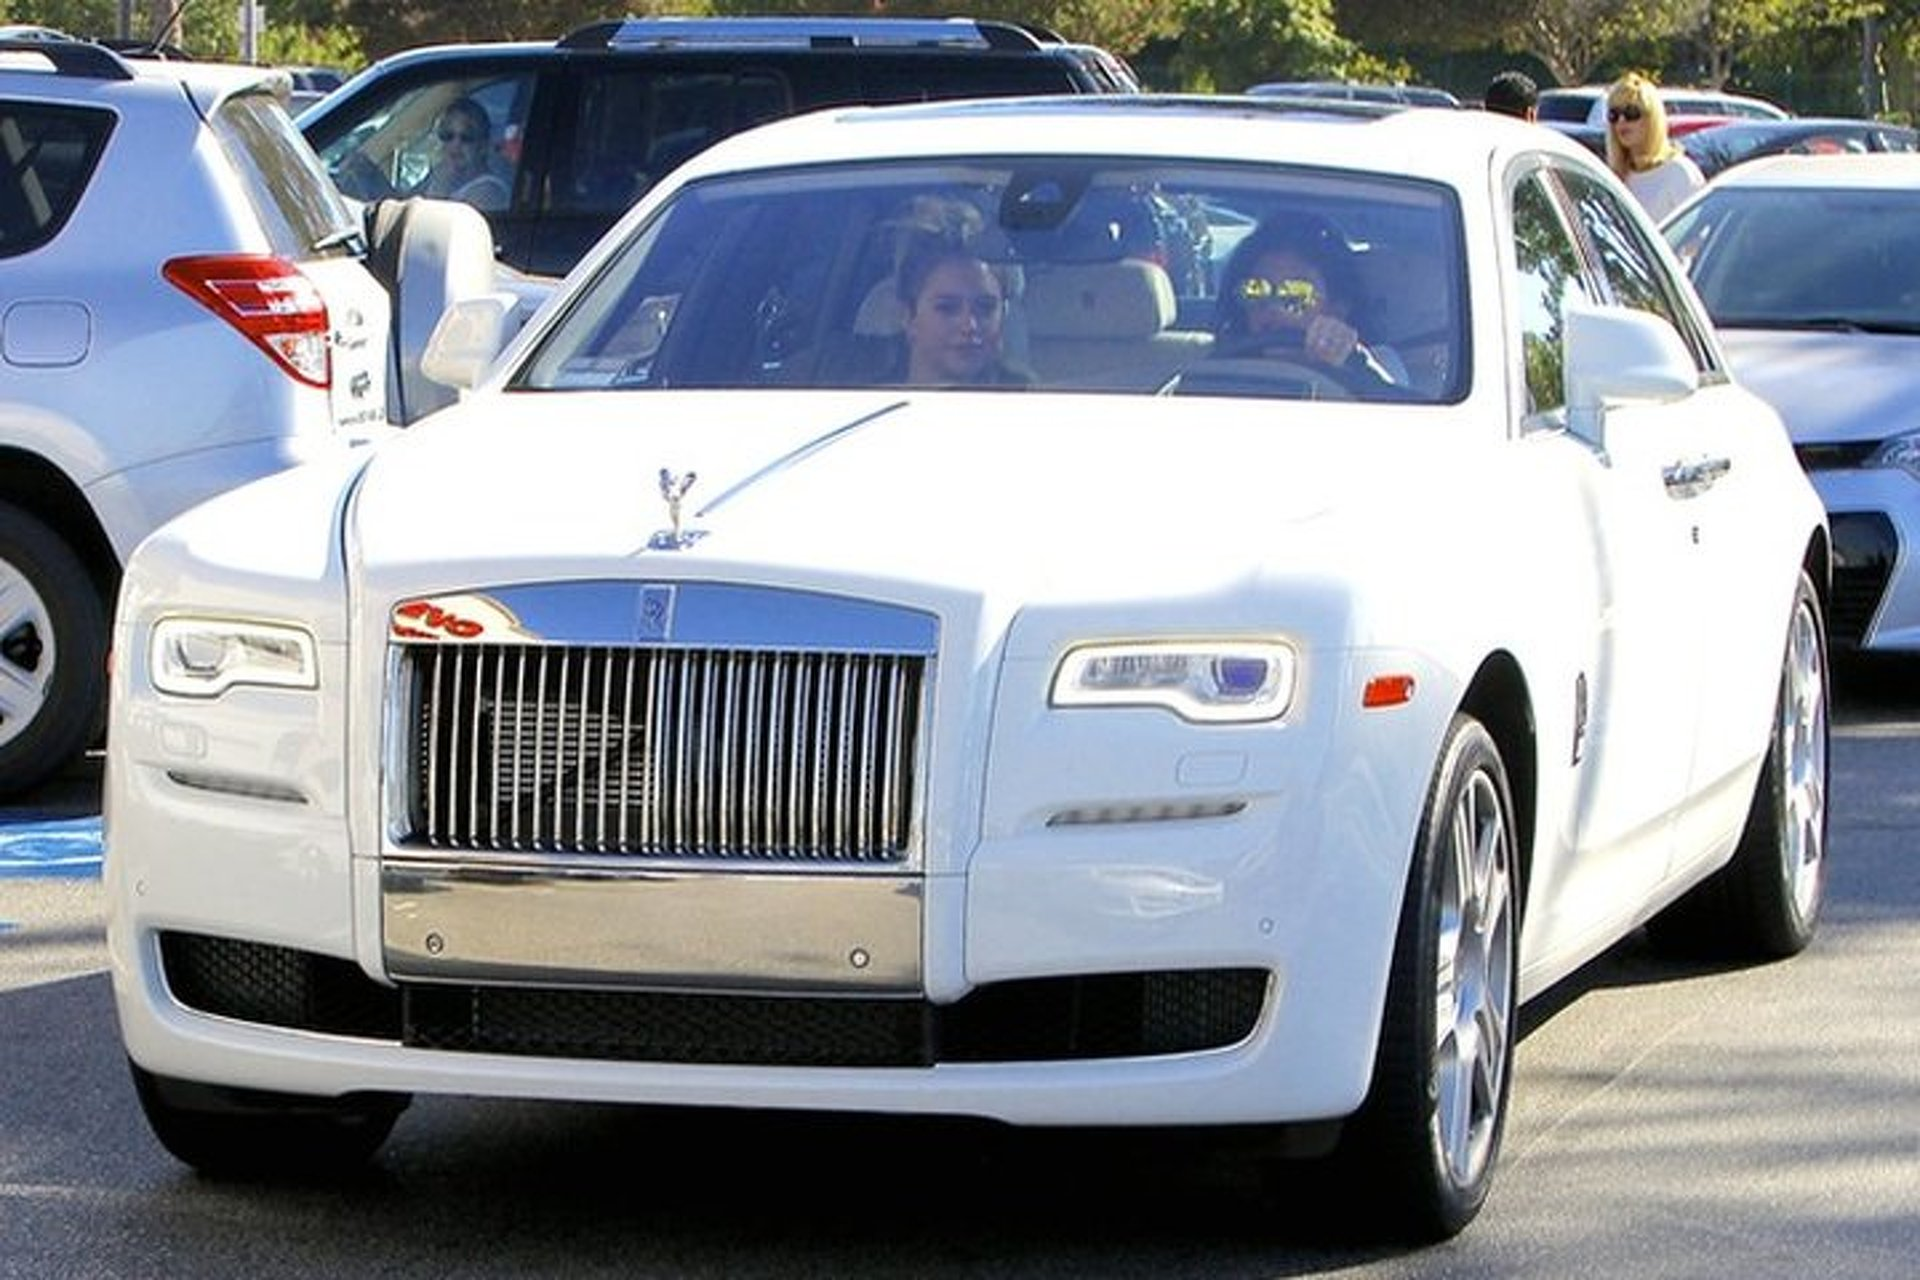 Kylie Jenner Takes to Social Media to Show off new Rolls-Royce